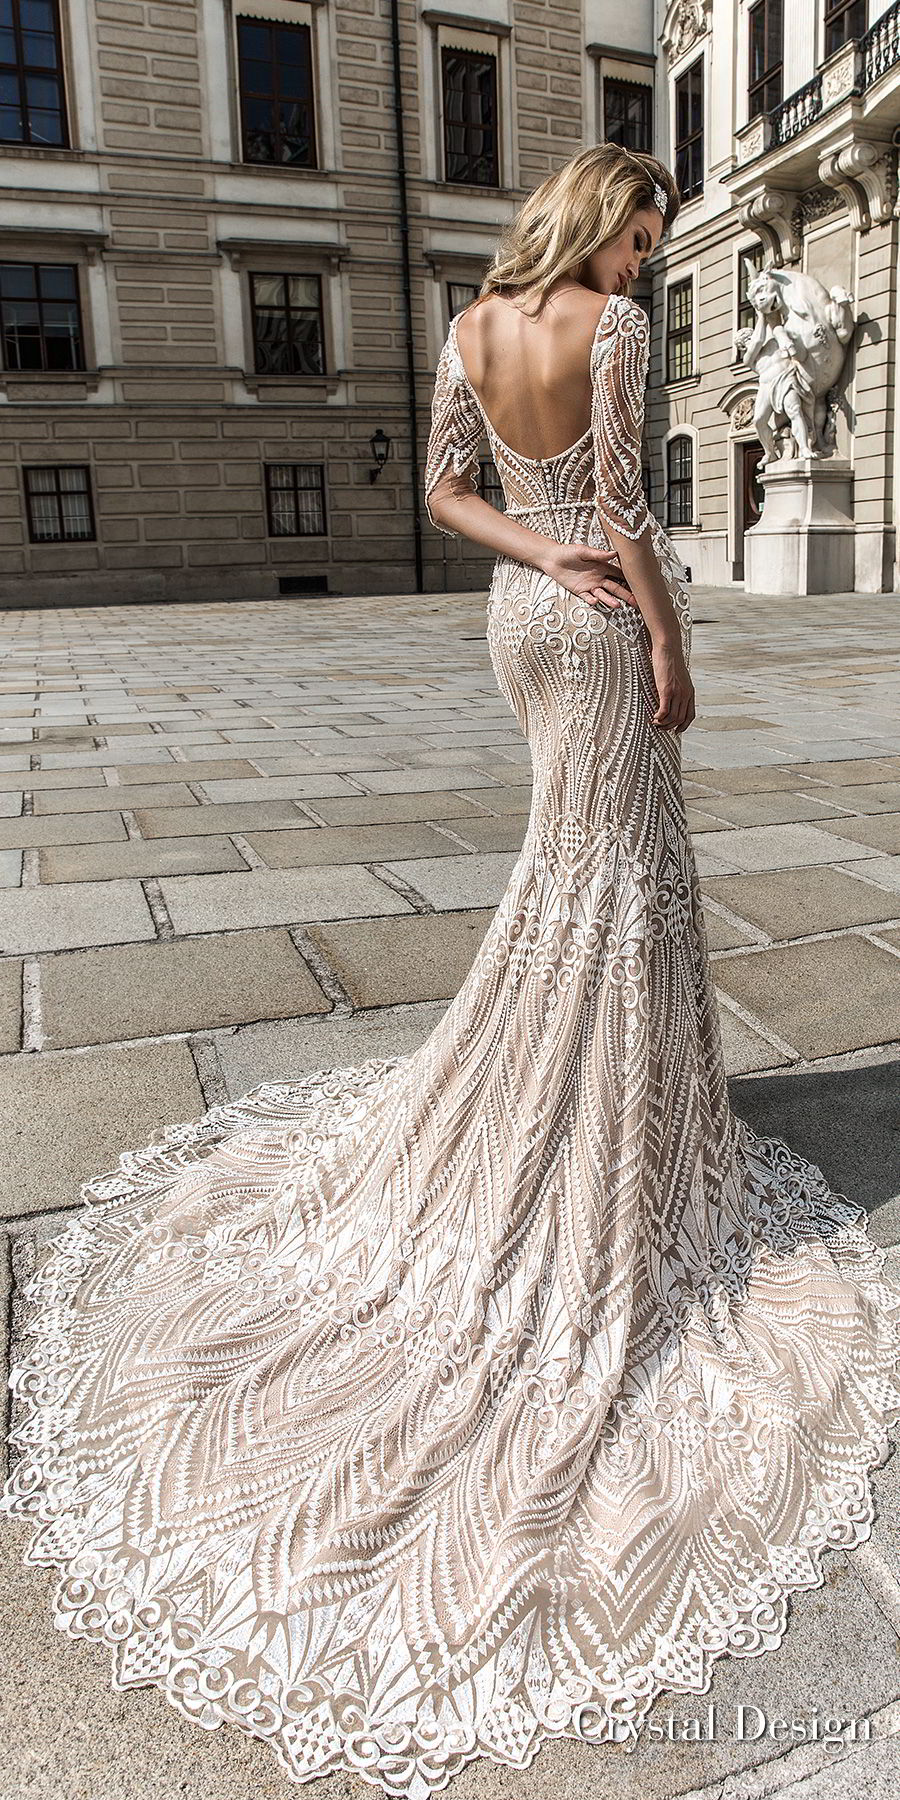 crystal design 2018 half sleeves illusion bateau sweetheart neckline full embellishment elegant fit and flare wedding dress scoop back chapel train (valery) bv